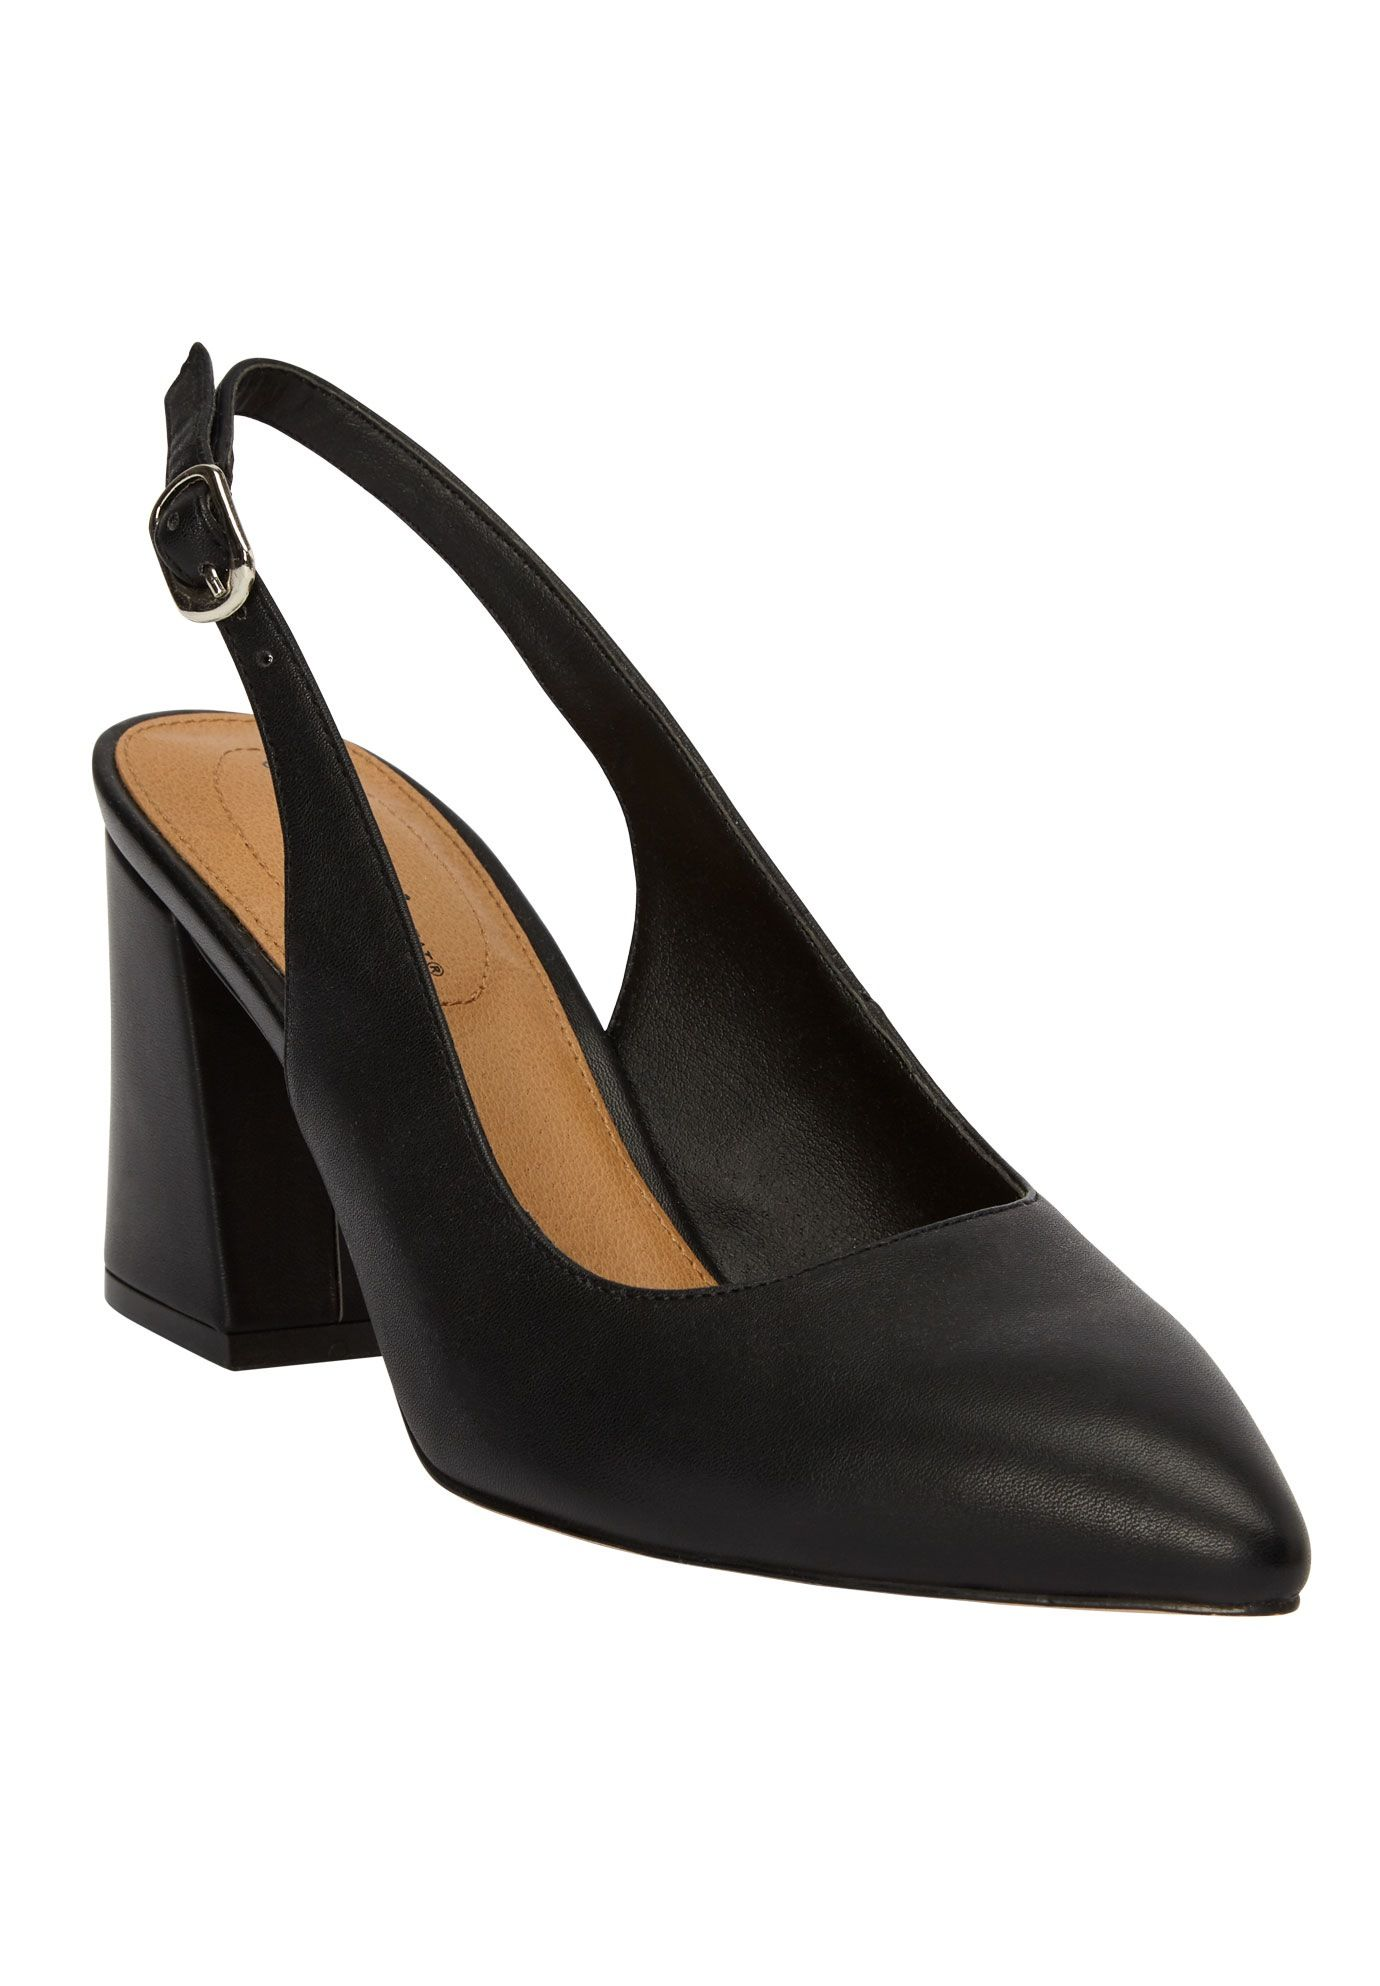 c72995fc527 The Liberty Slingback Pump by Comfortview - Women s Plus Size Clothing